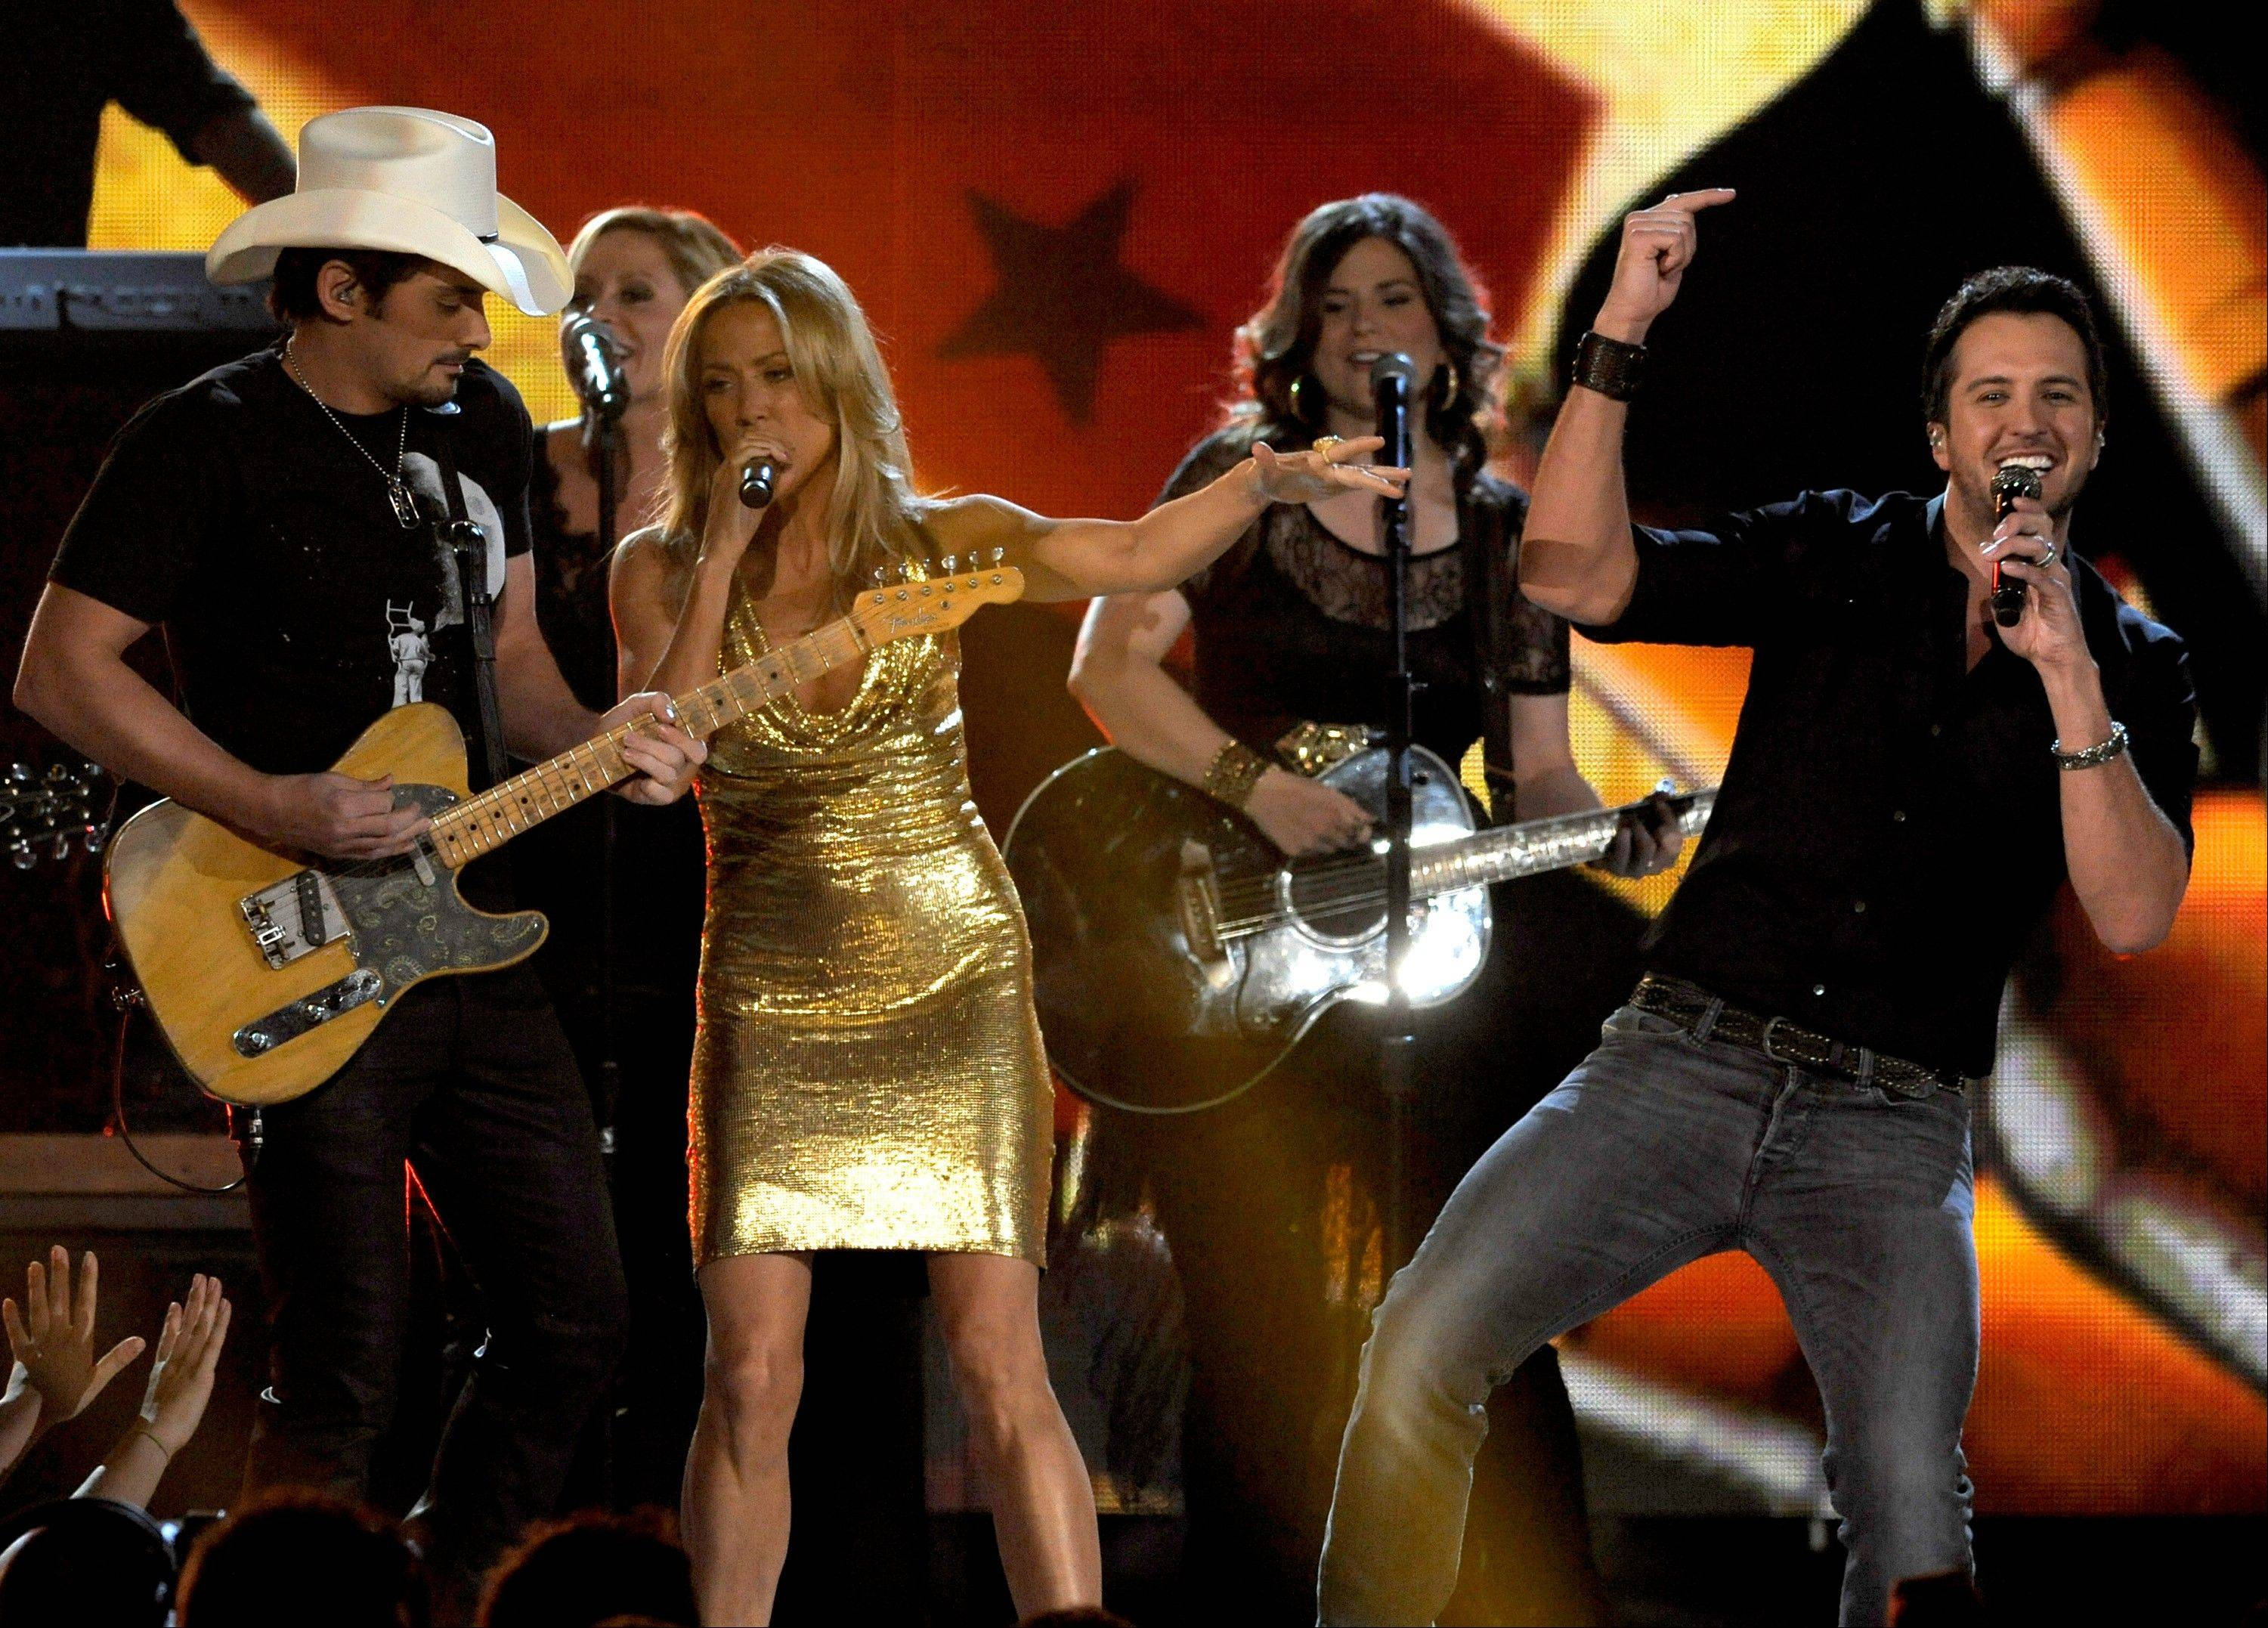 Brad Paisley, left, Cheryl Crow and Luke Bryan perform onstage at the 48th Annual Academy of Country Music Awards in Las Vegas on Sunday.